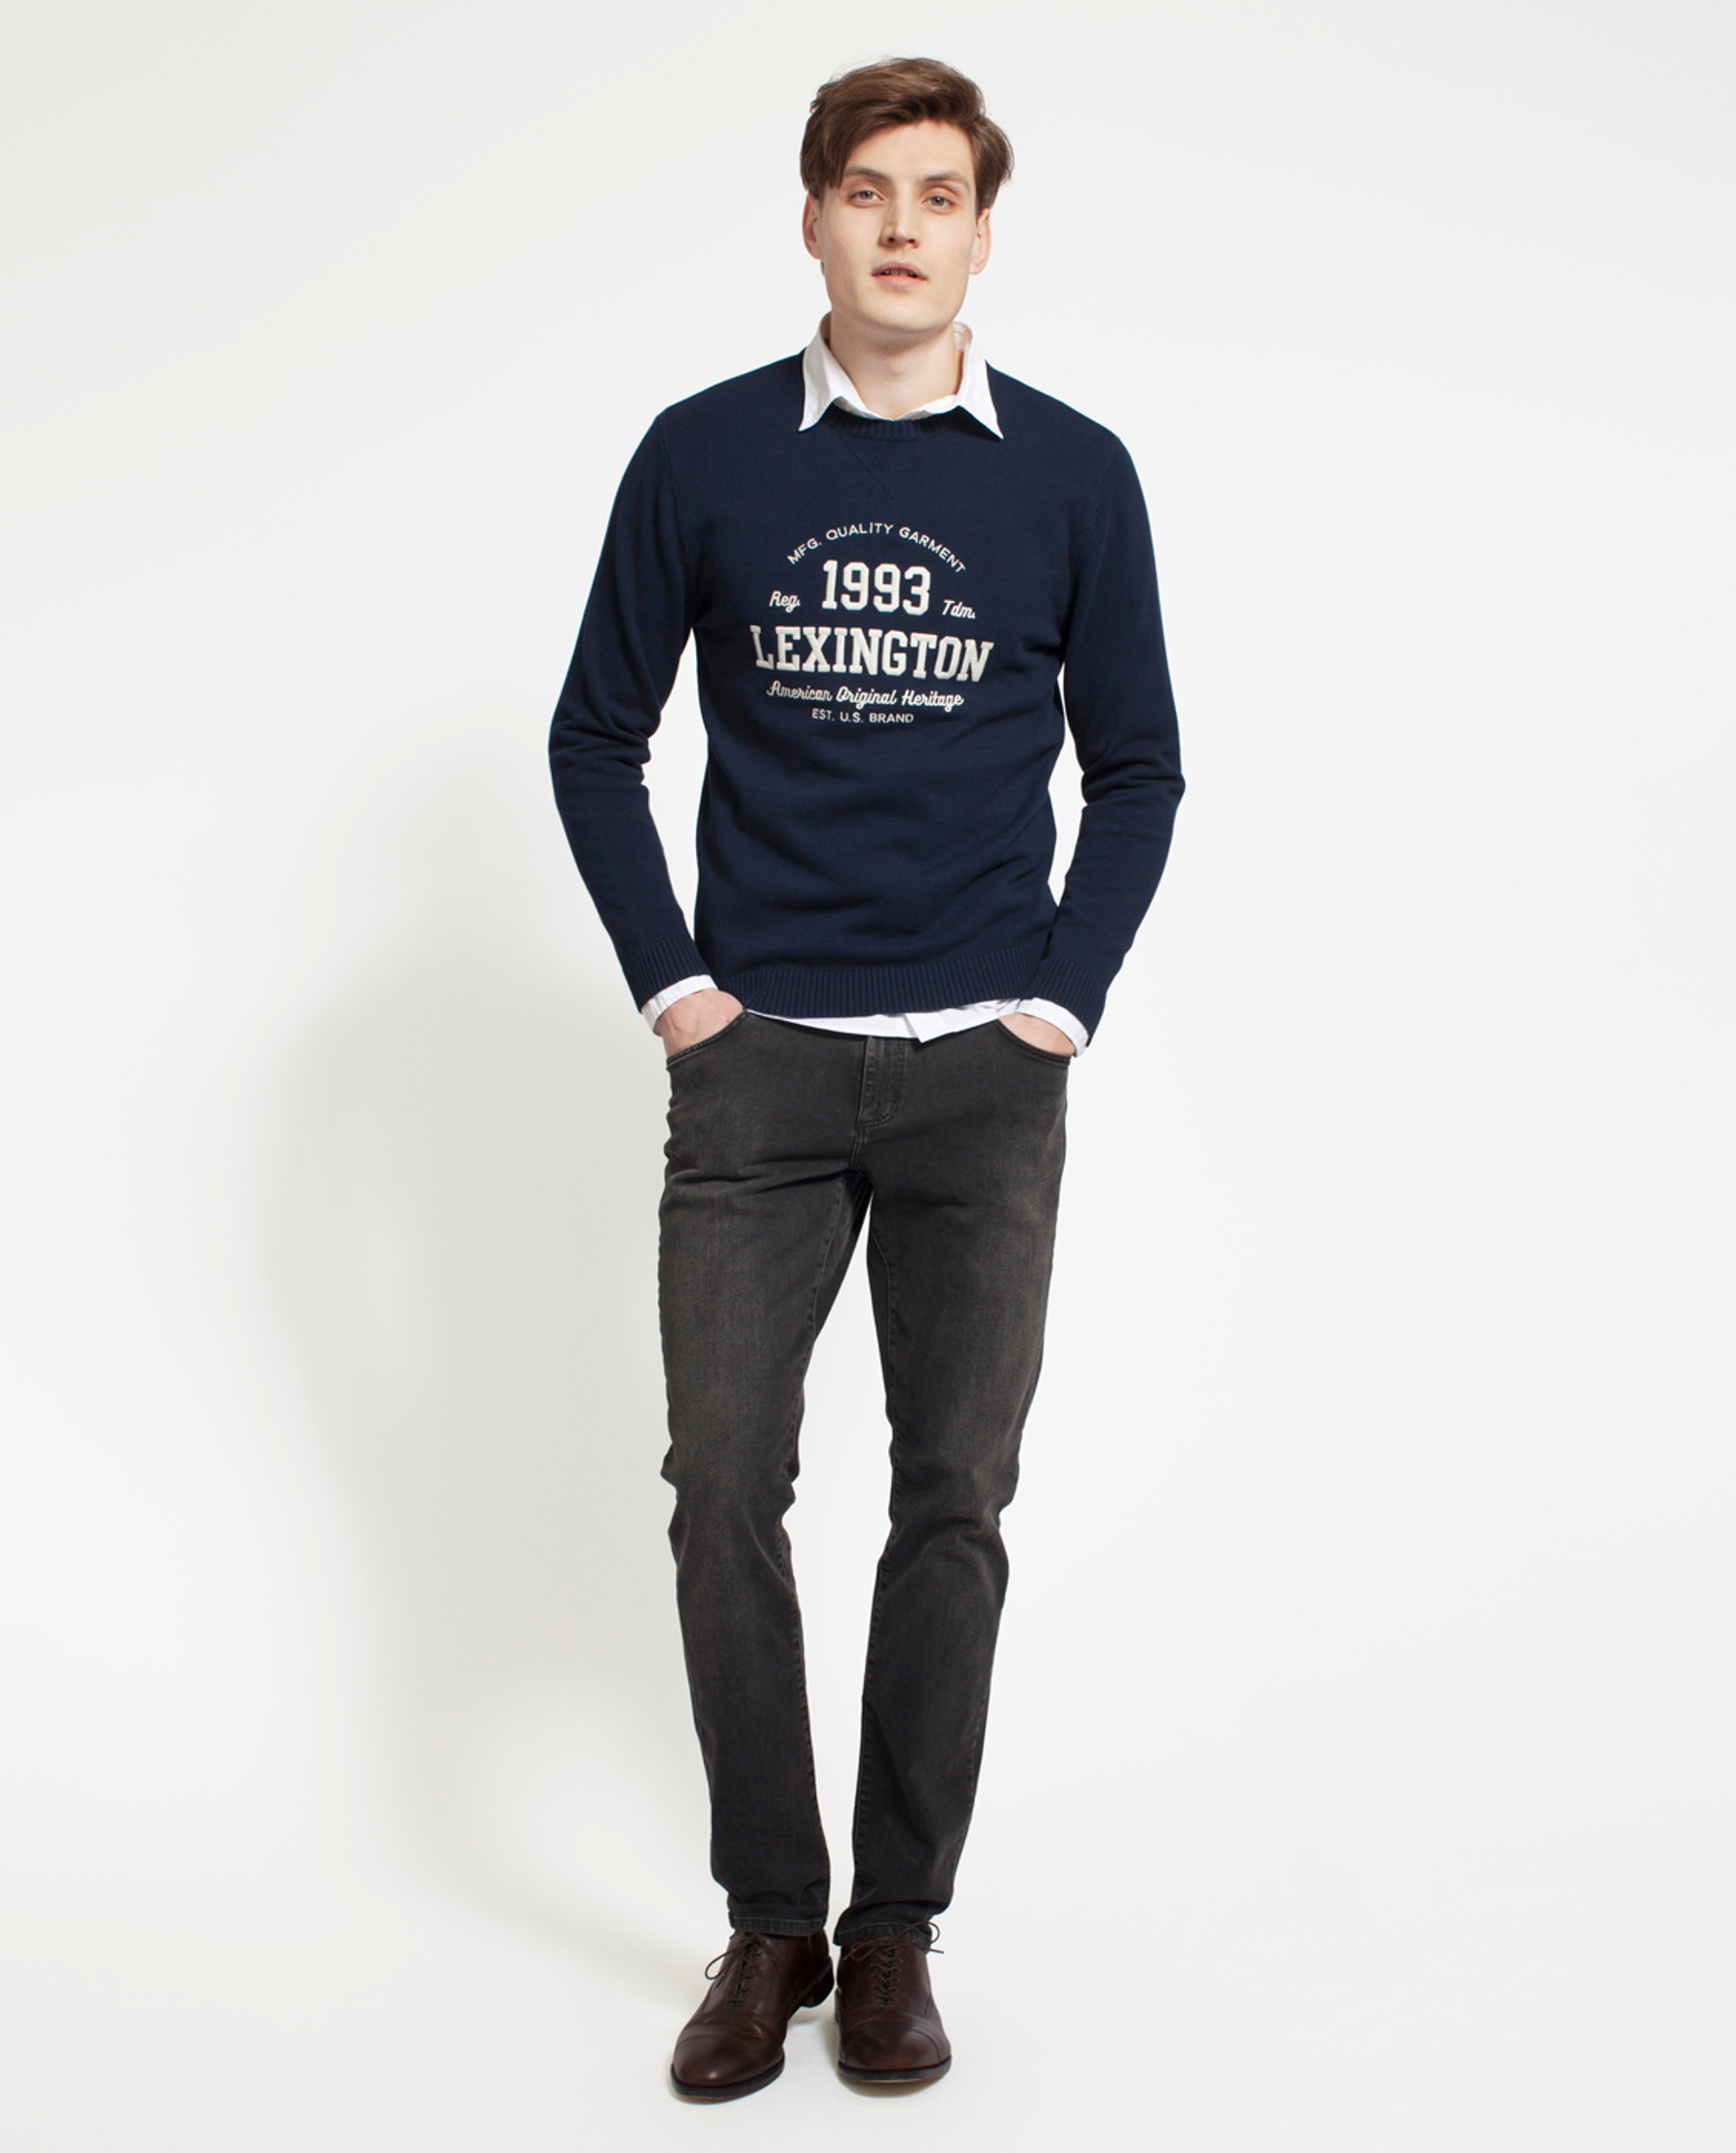 Nelson Knitted Sweatshirt, Deepest Blue